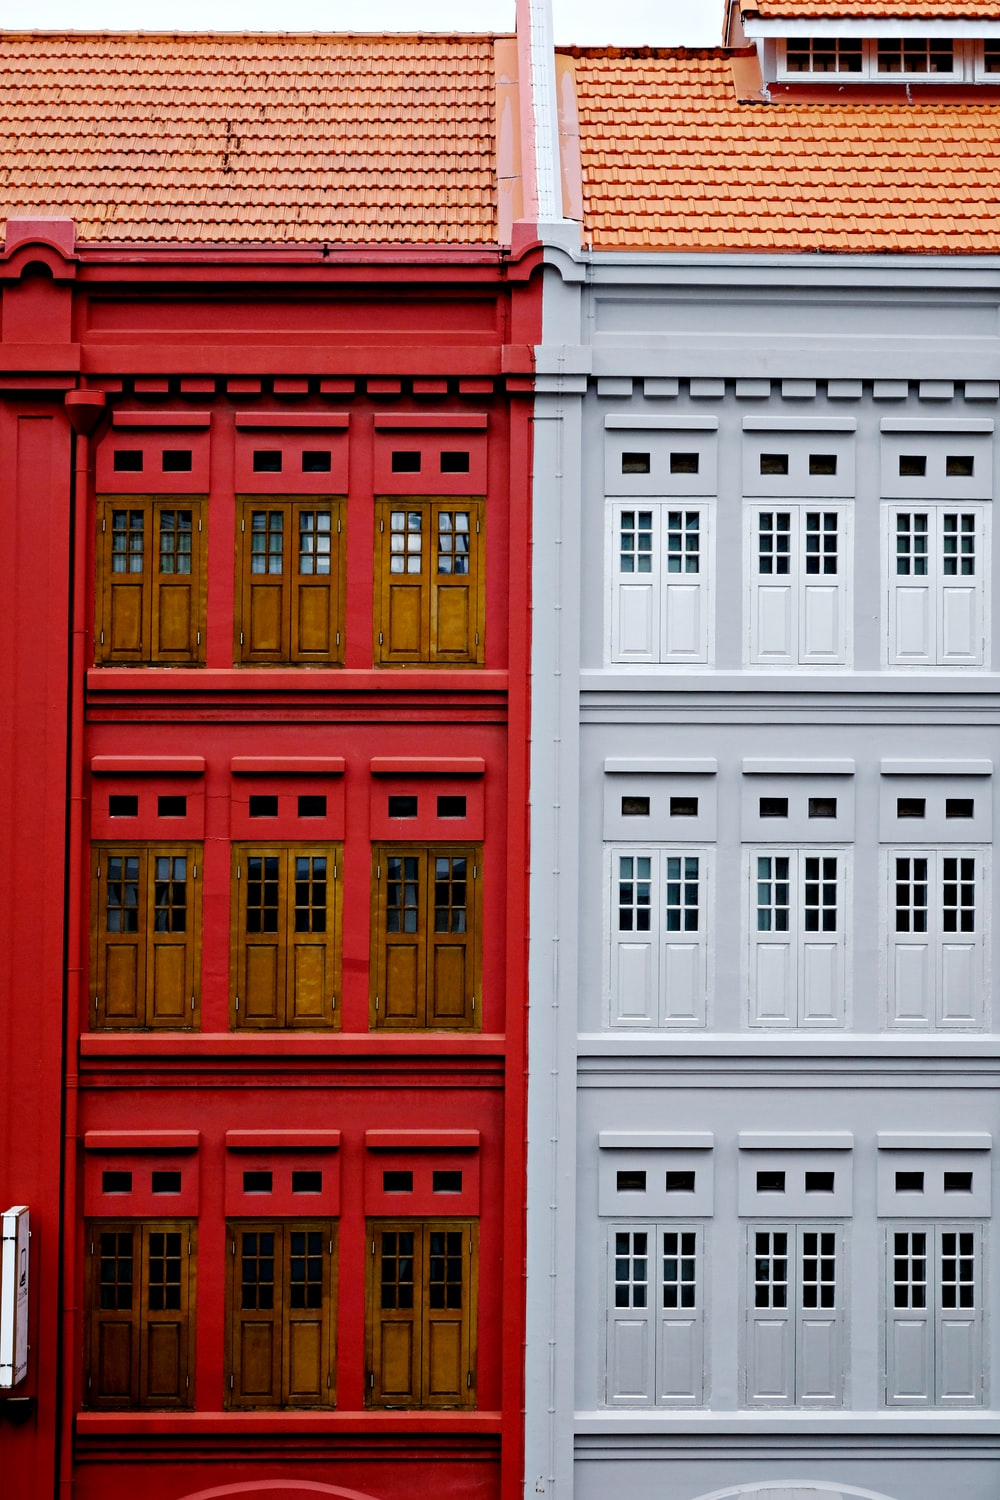 red and white concrete building